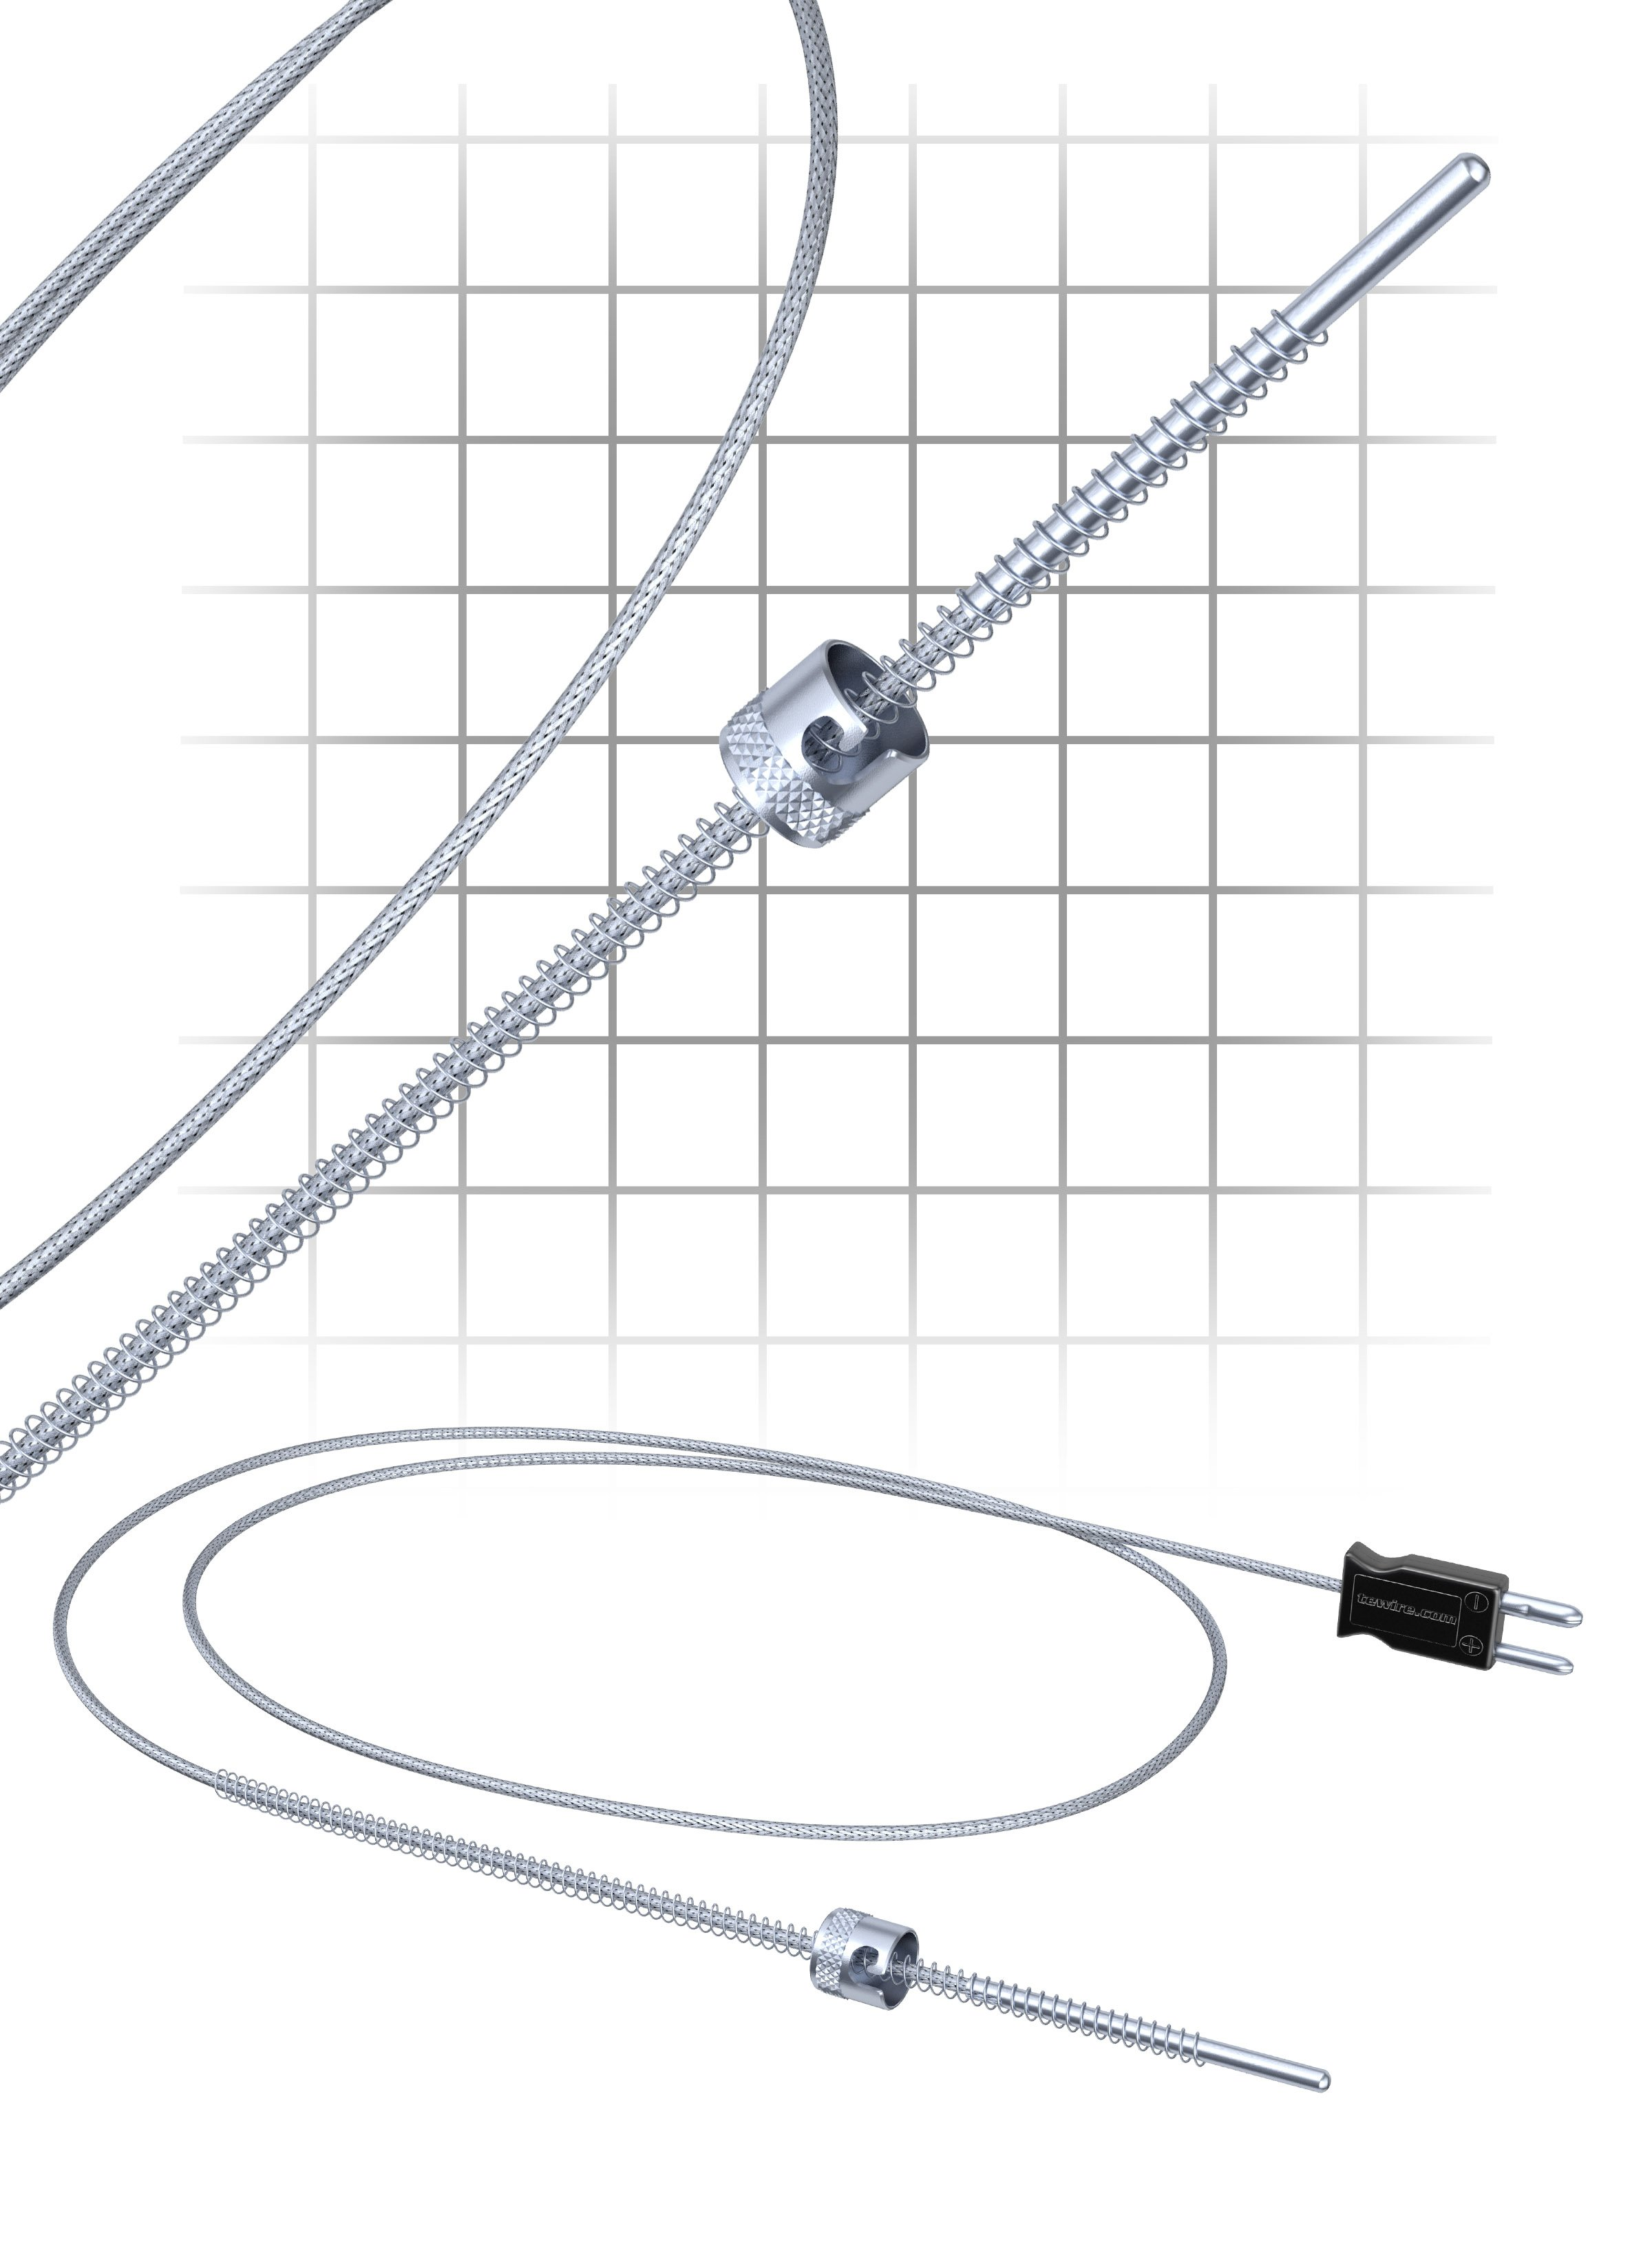 4 pitfalls of invar tool thermocouples and how to avoid them